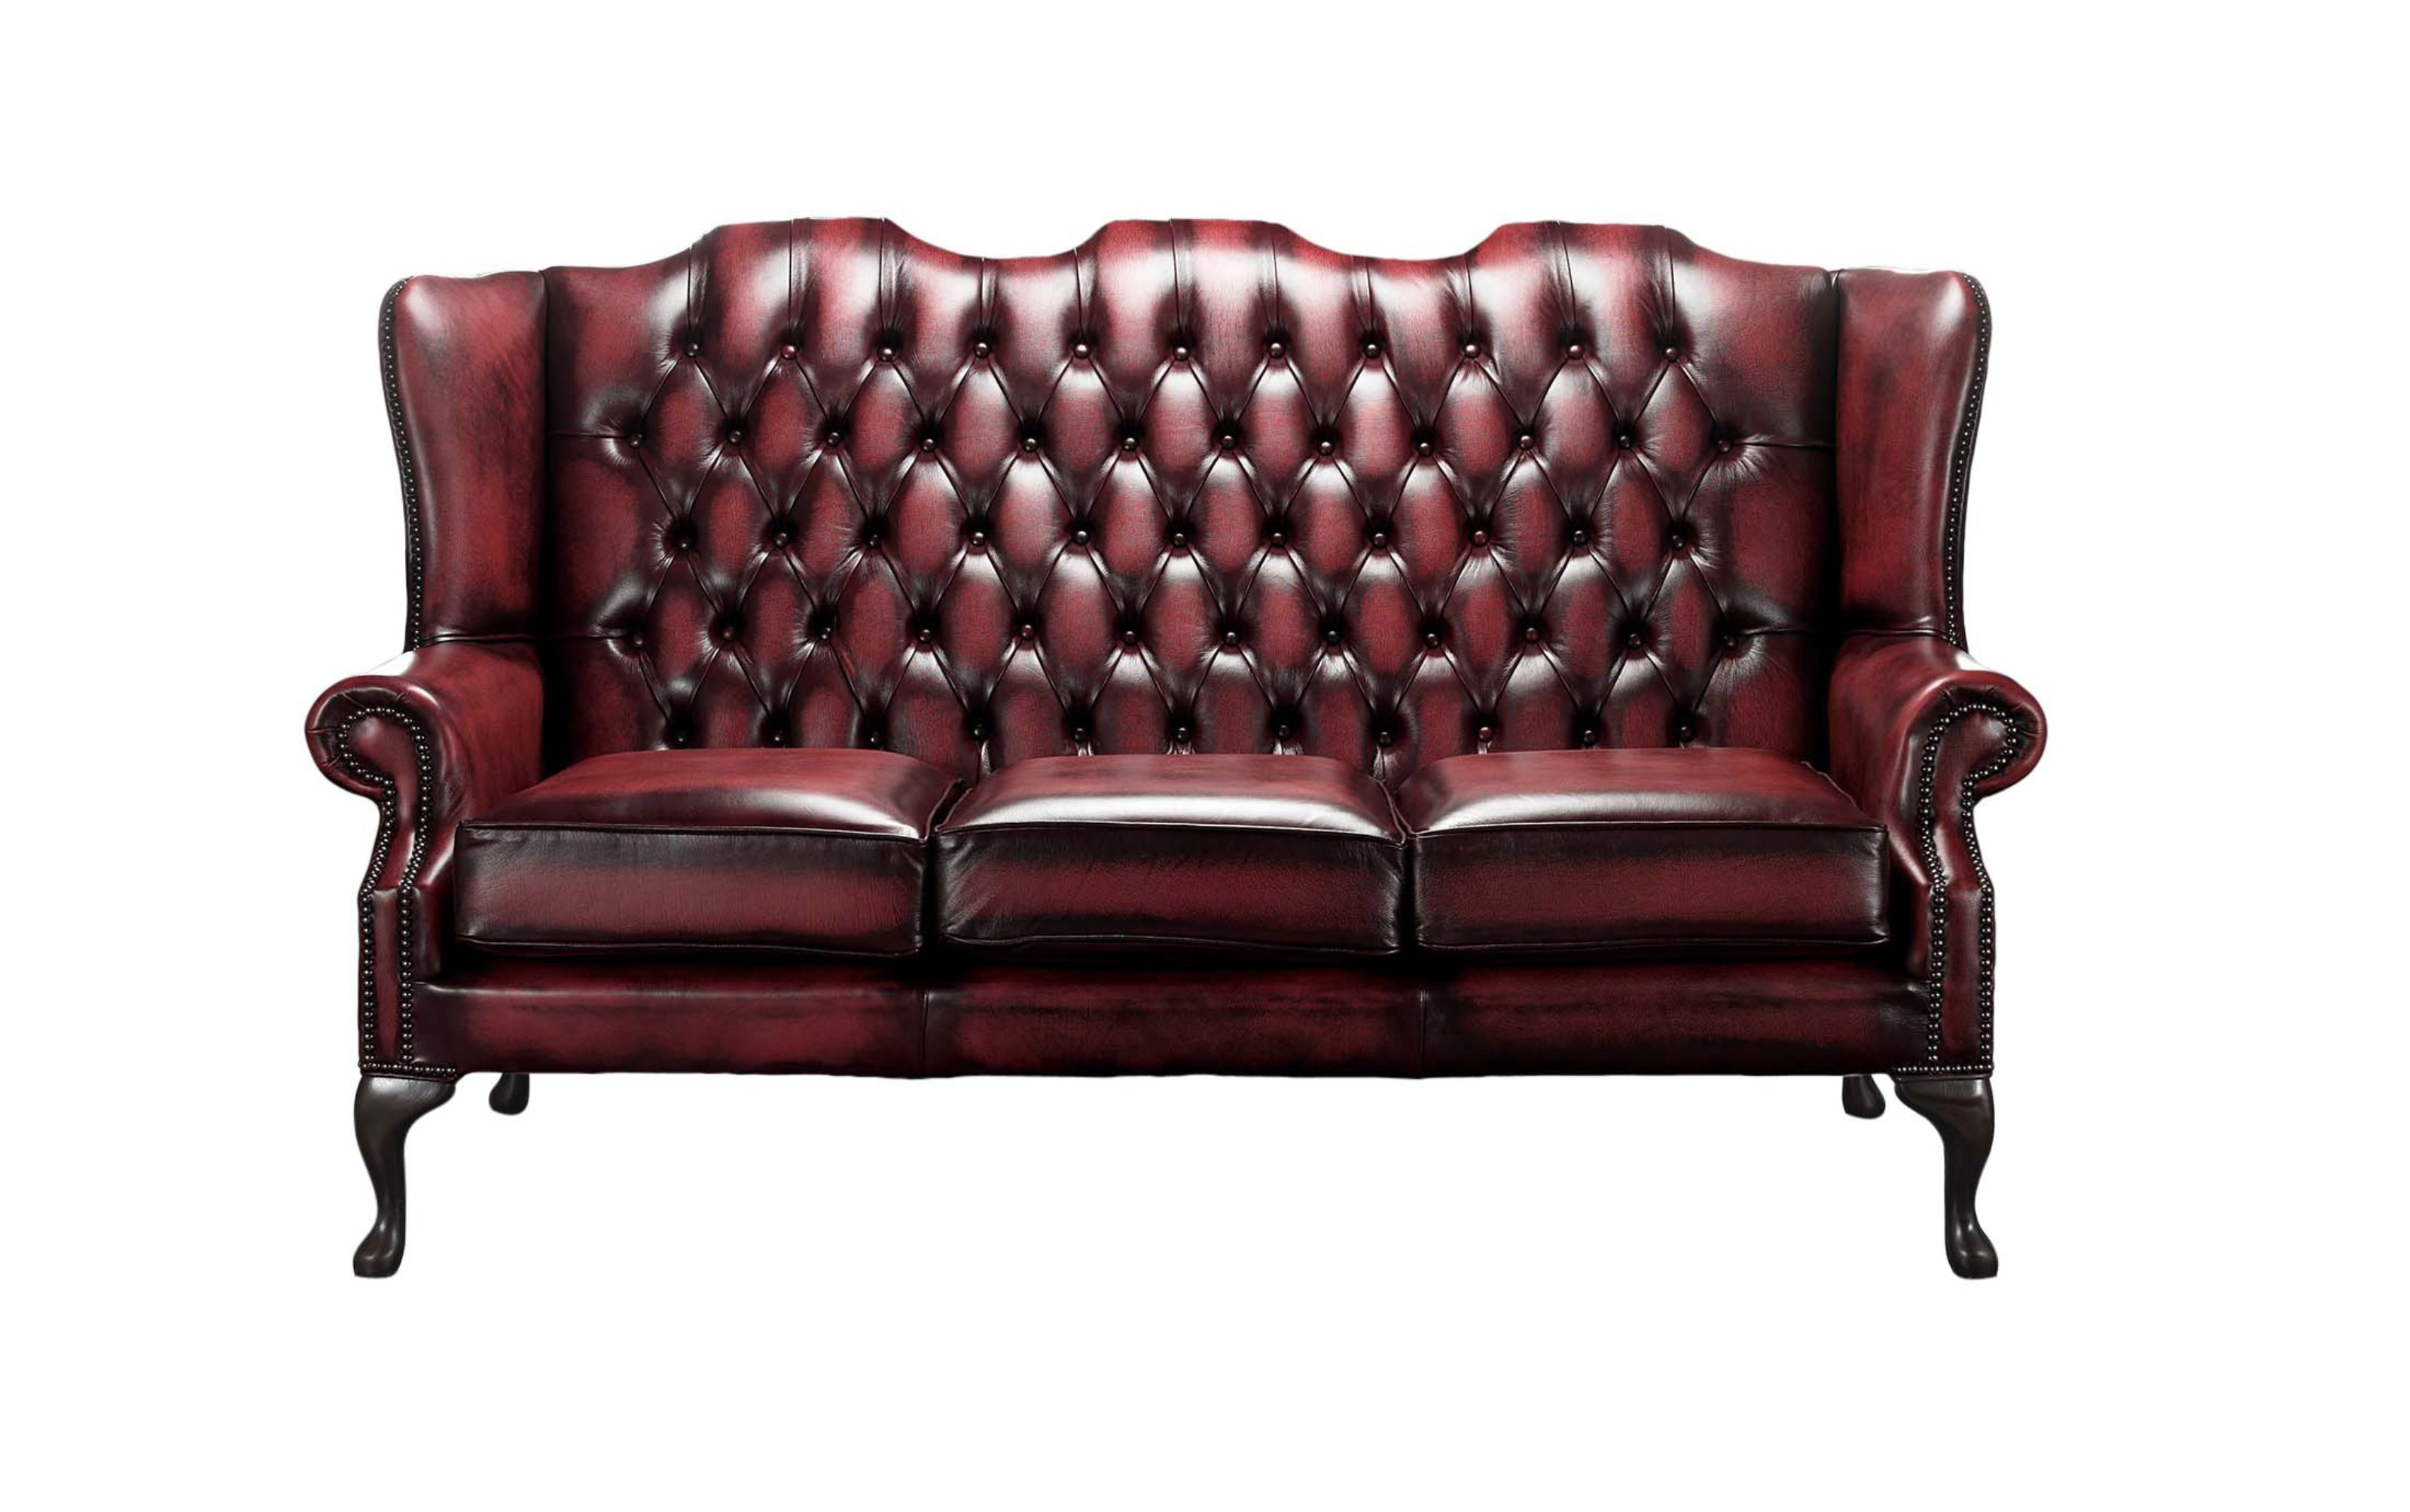 High Back Antique Sofa Chesterfield 3 Seater Mallory Queen Anne High Back Wing Sofa Chair Antique Oxblood Leather